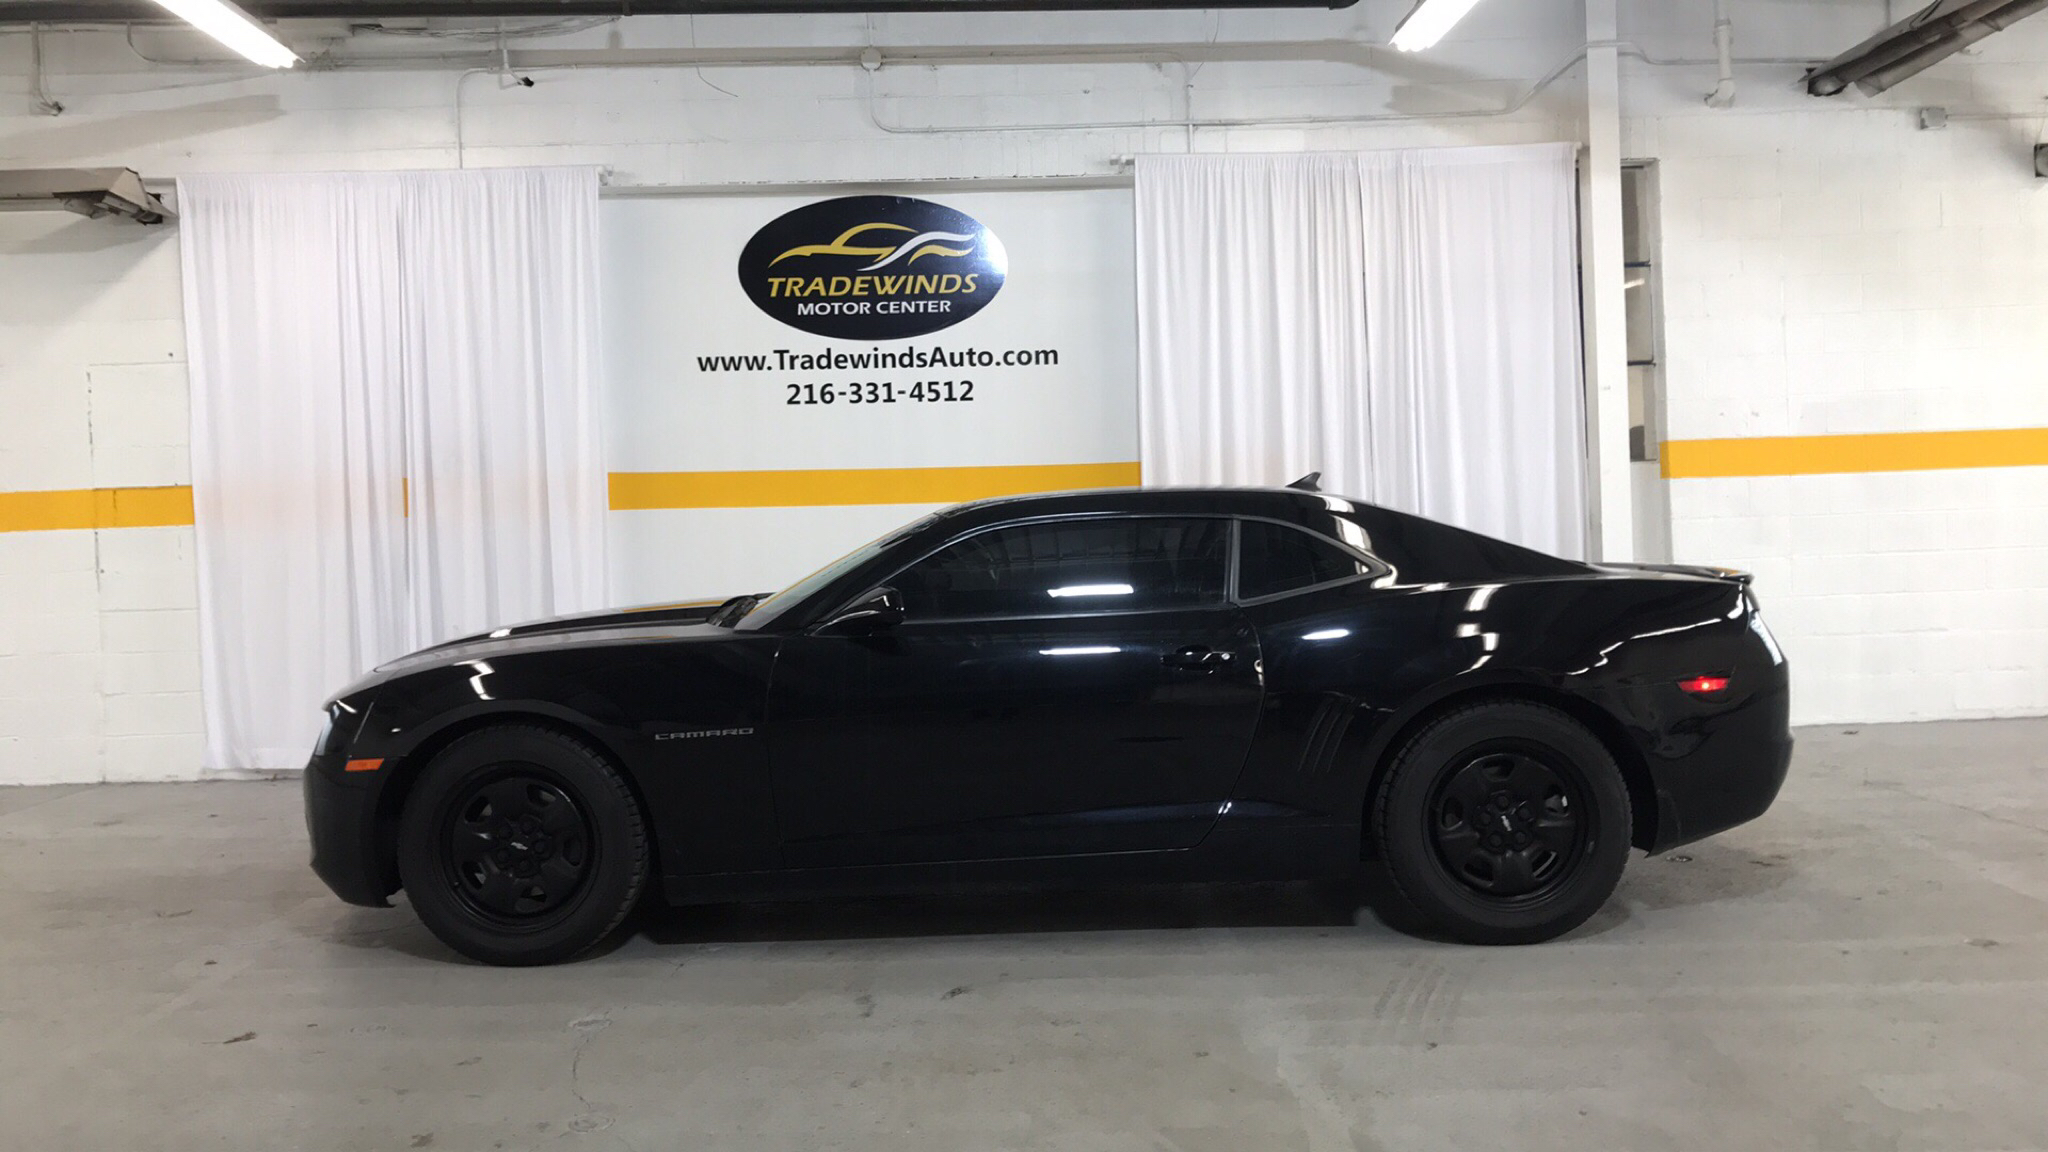 2013 CHEVROLET CAMARO LS for sale at Tradewinds Motor Center